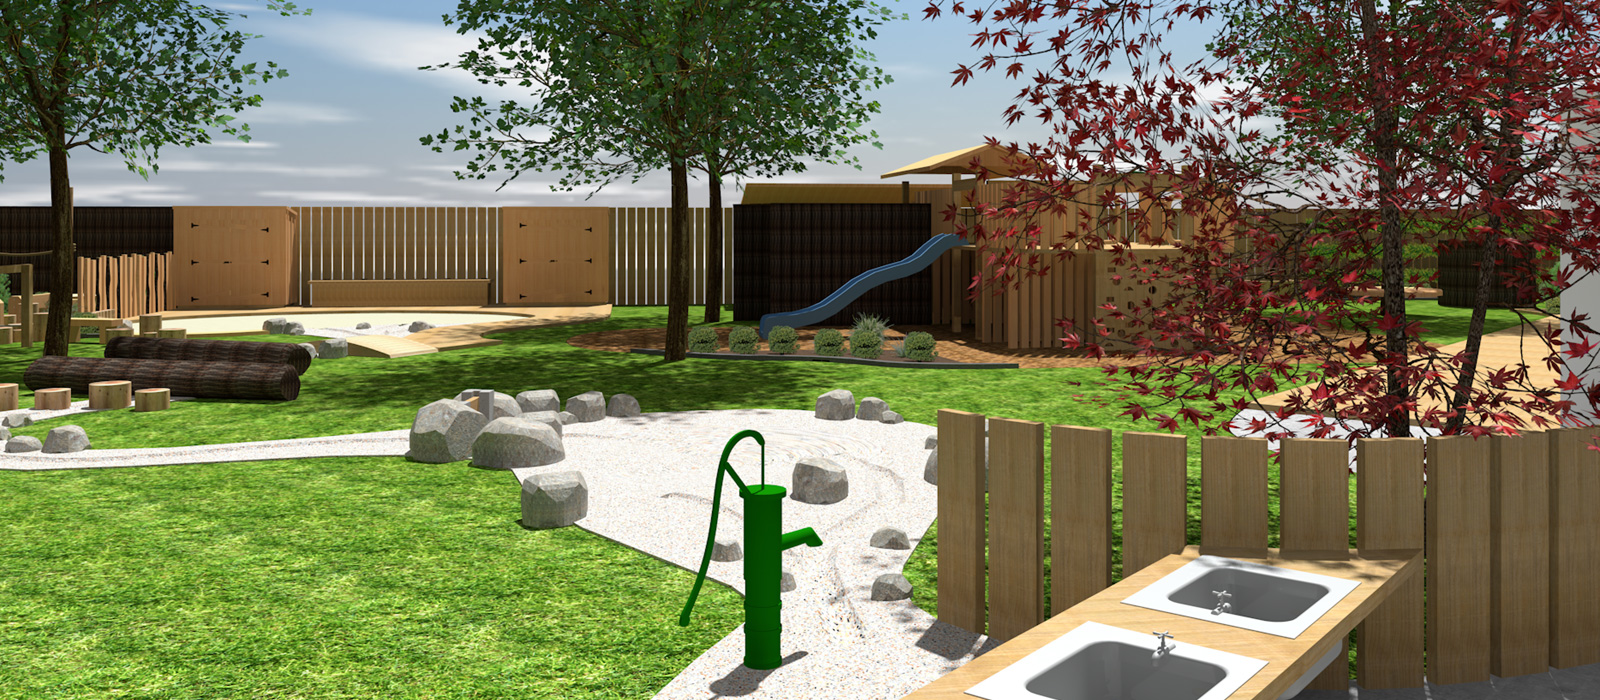 3D Design of Lifewise Childcare Centre in Massey // Playscape Design